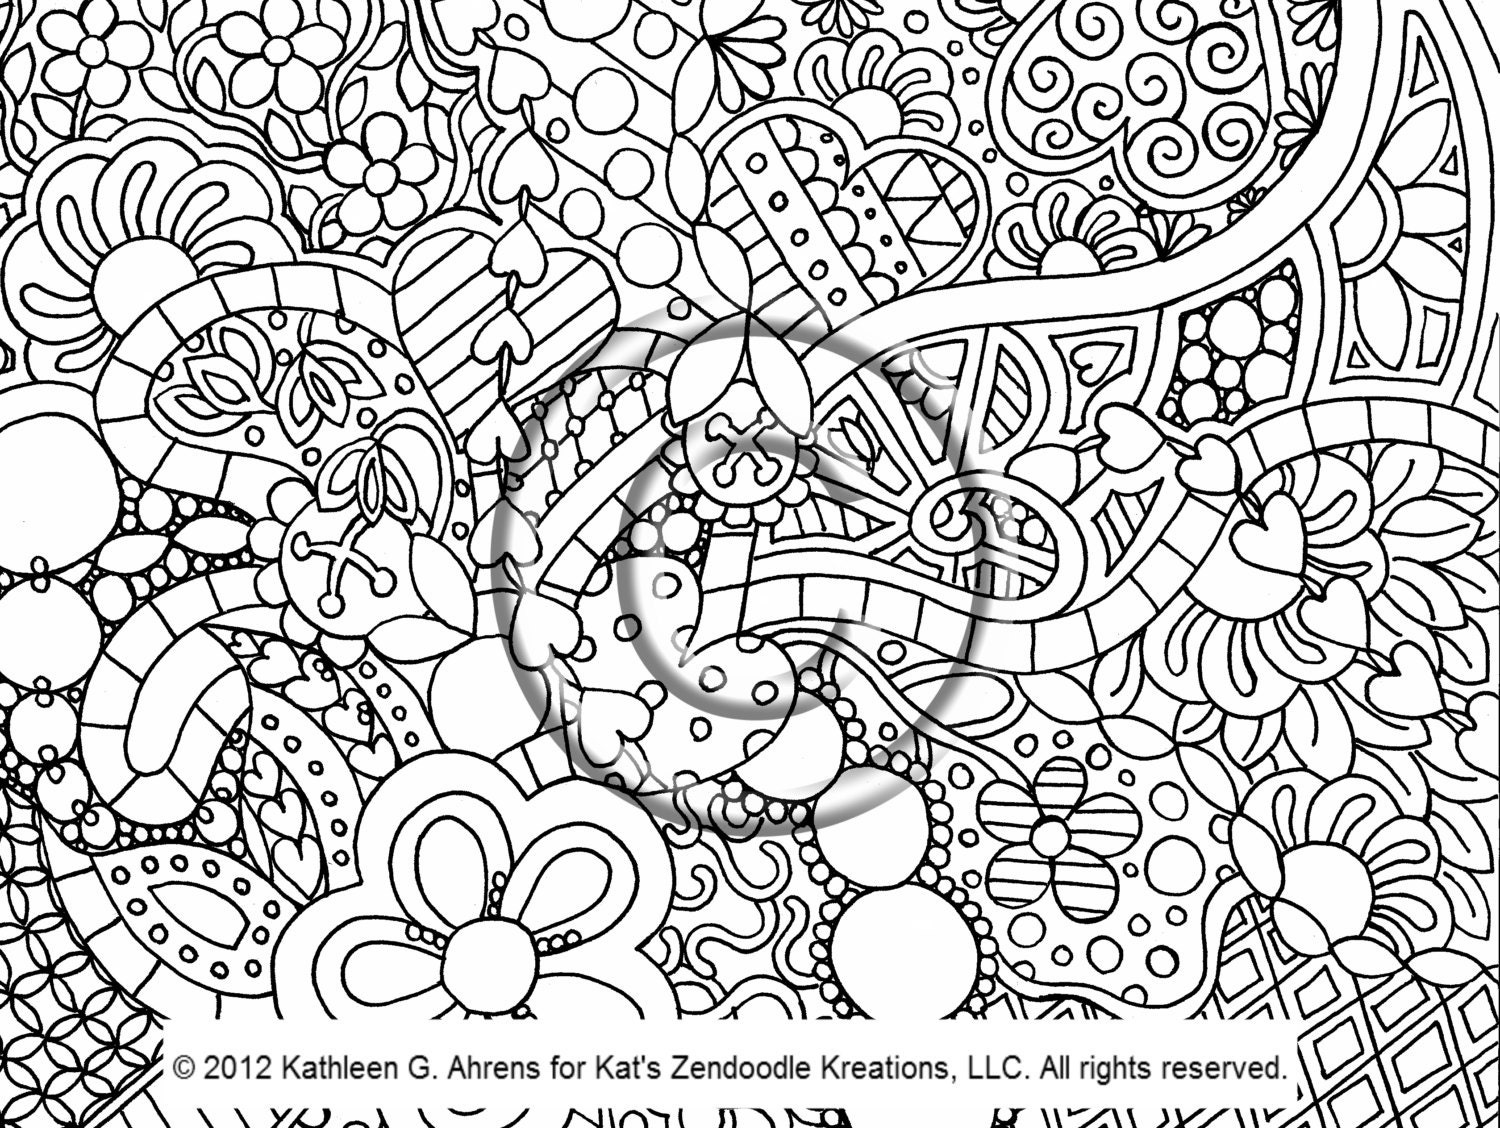 psychedelic hippie - Psychedelic Hippie Coloring Pages